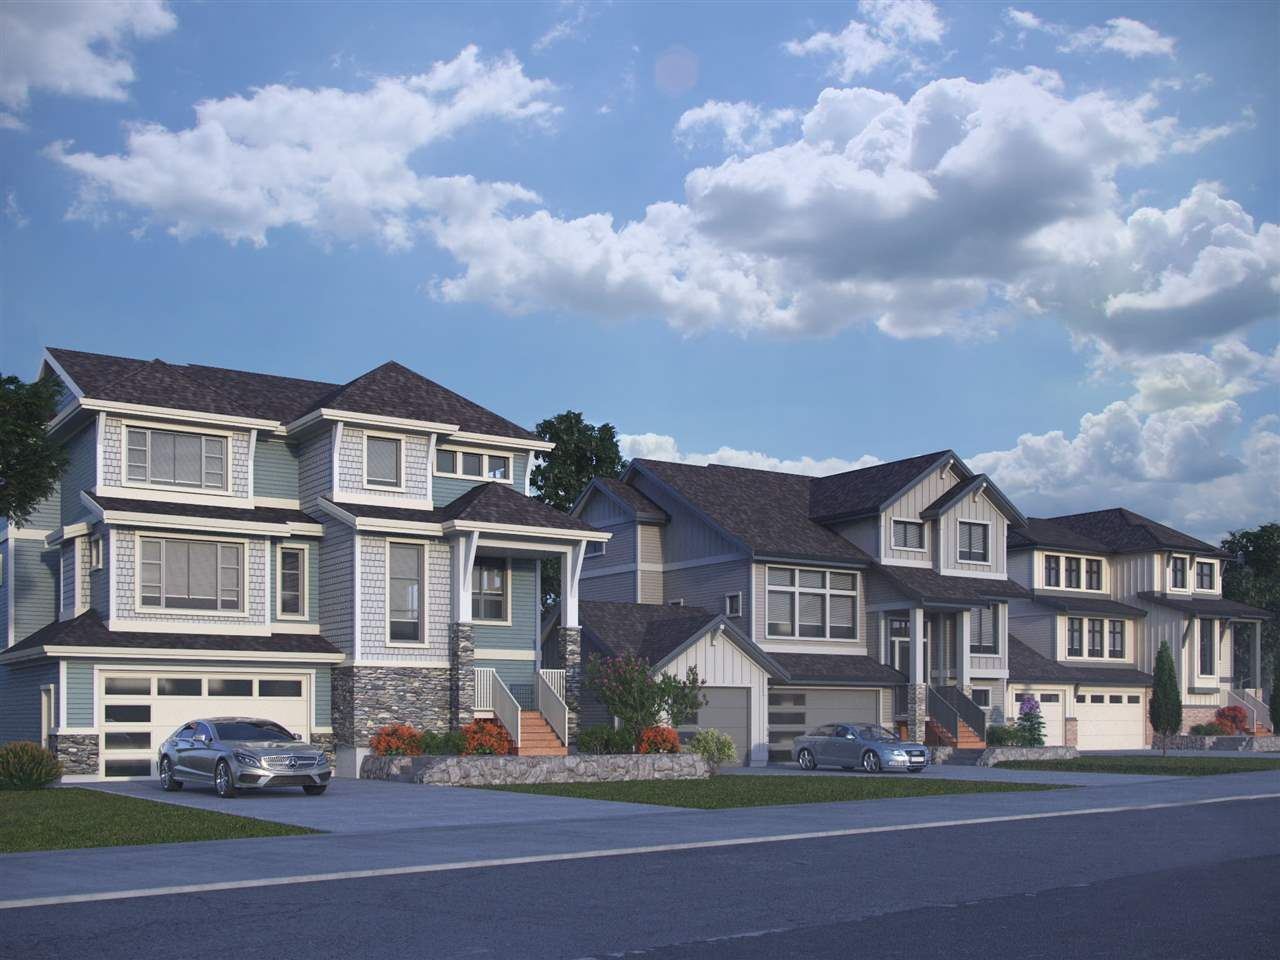 Main Photo: 47259 SWALLOW Place in Chilliwack: Little Mountain House for sale : MLS®# R2522737